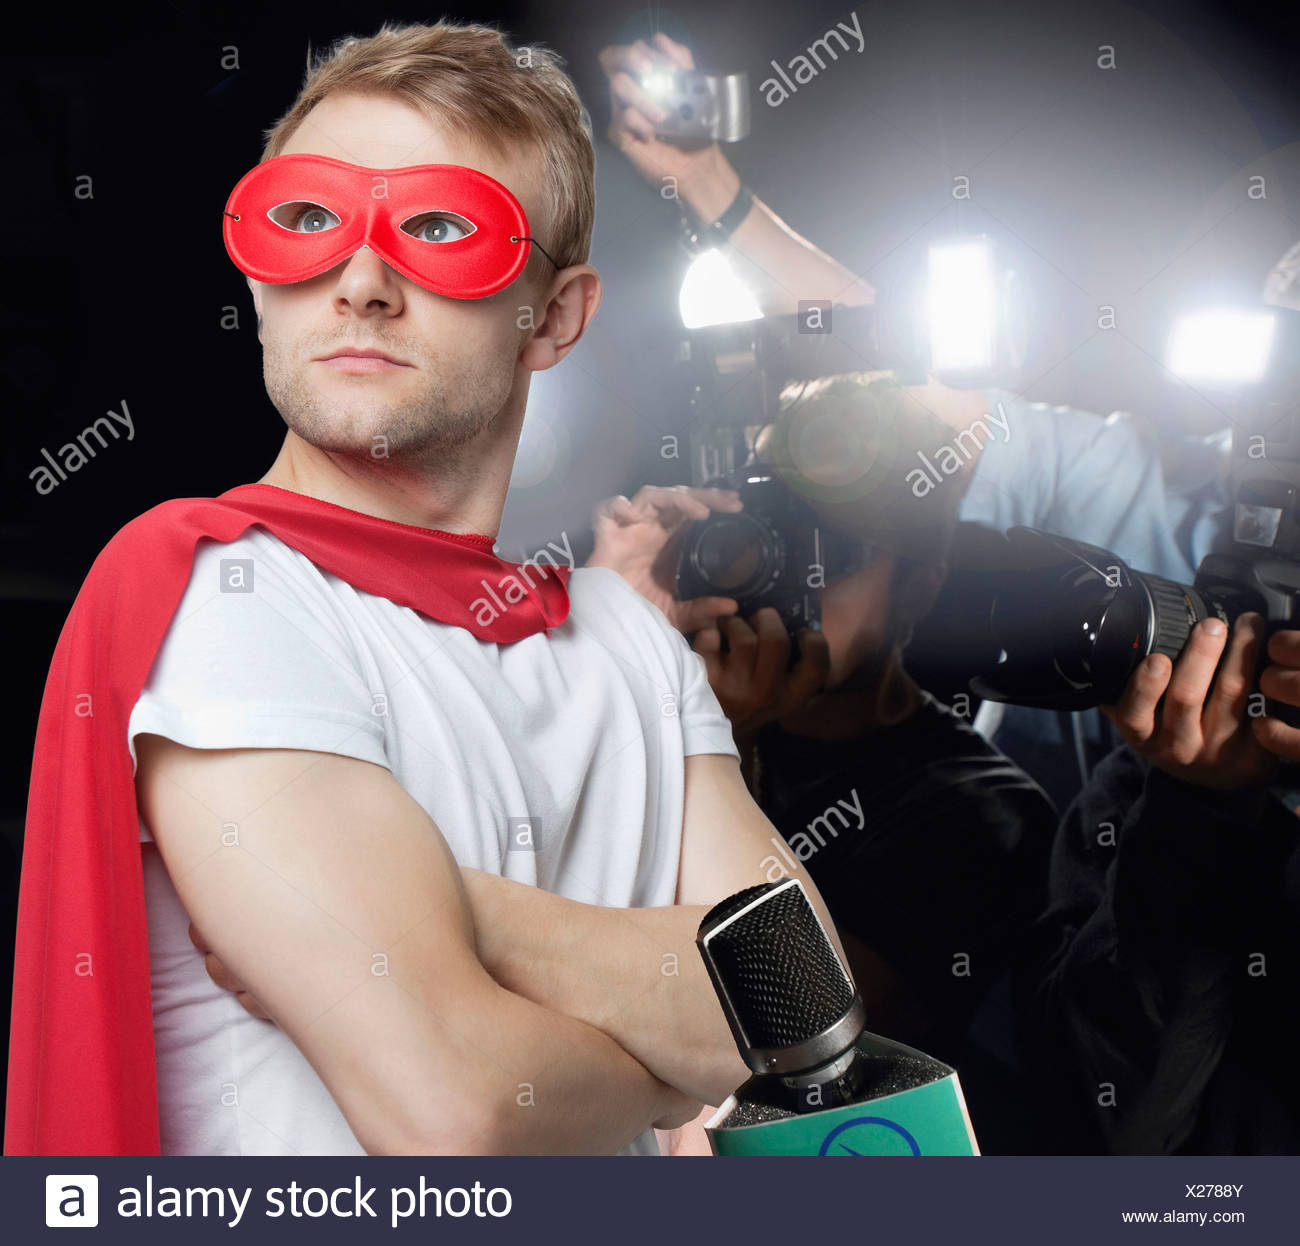 Superhero being photographed by paparazzi - Stock Image